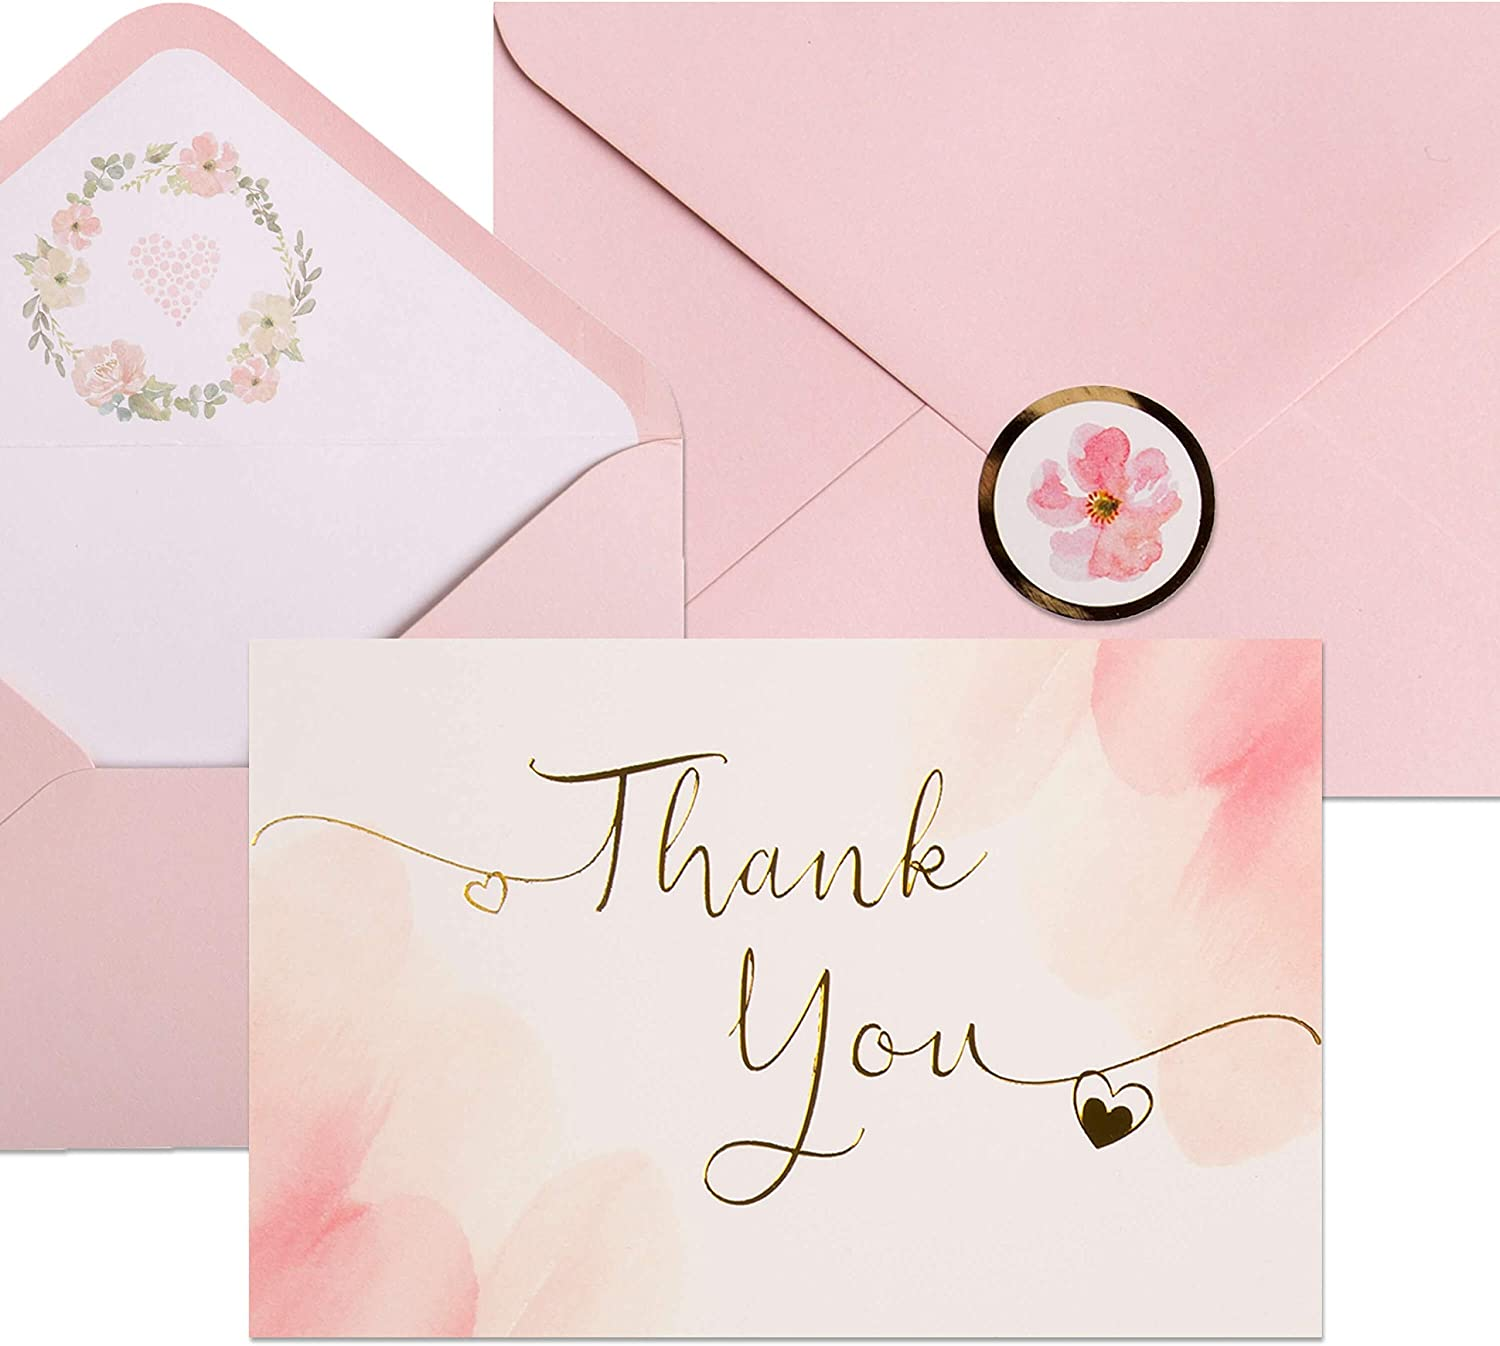 40 Blush Thank You Cards | Watercolor Pink and Gold Foil Thank You Notes Perfect for Girl's Baby Shower, Wedding & Bridal Showers | Blush Envelopes & Floral Foil Stickers Included.